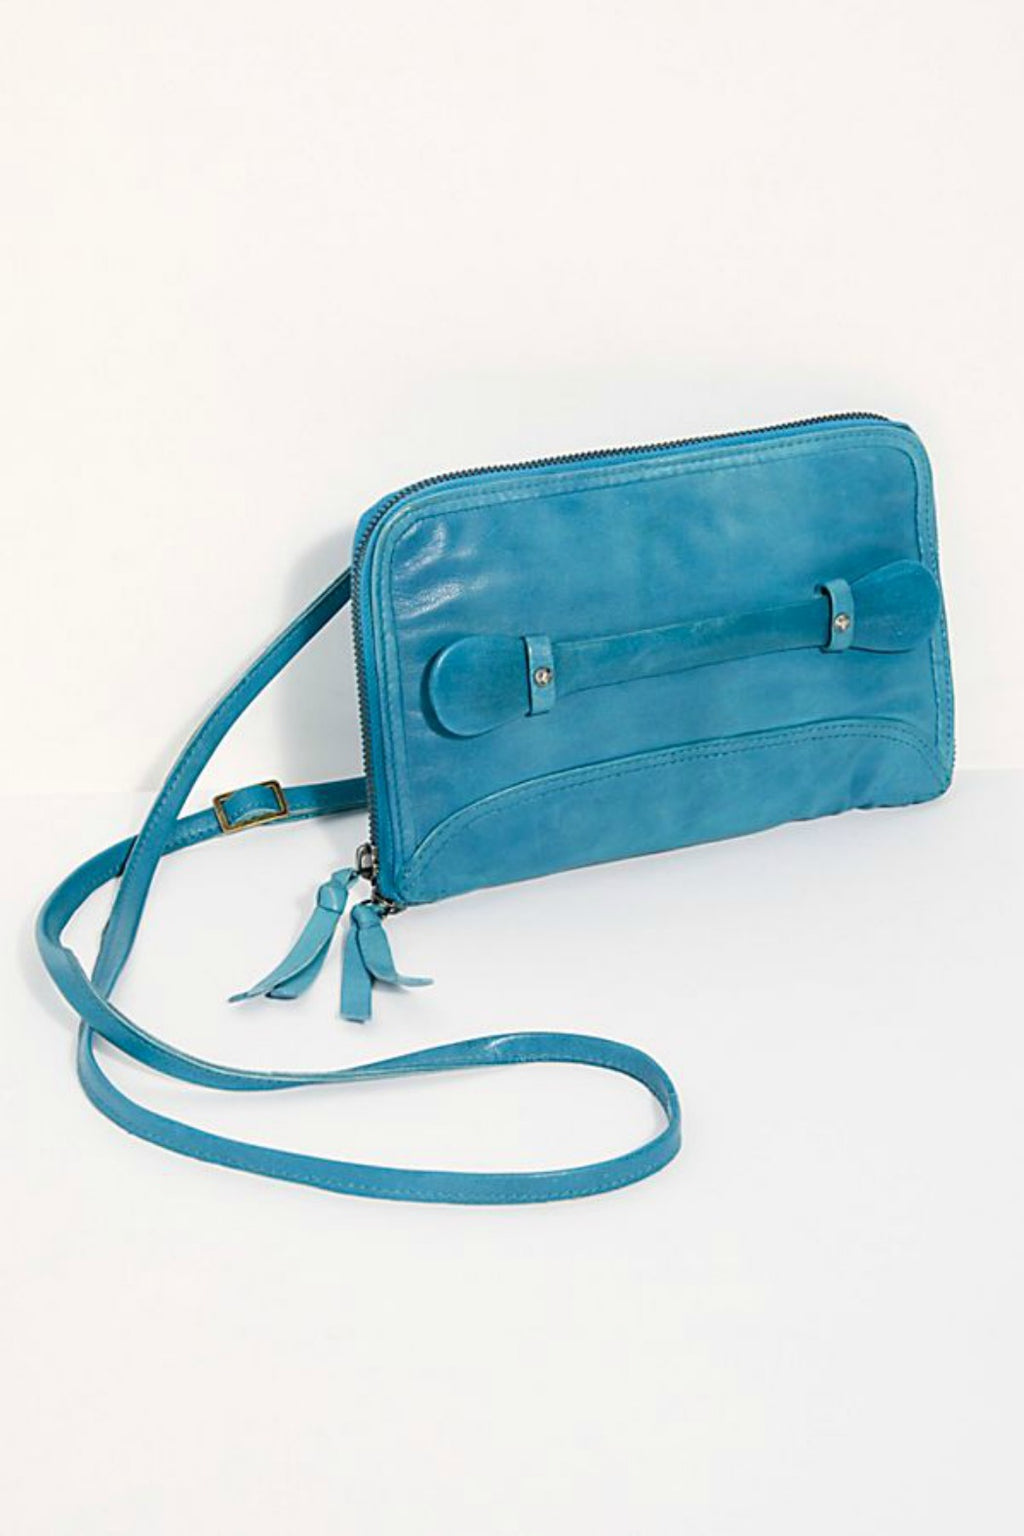 Free People We The Free Traveler Wallet - Turquoise